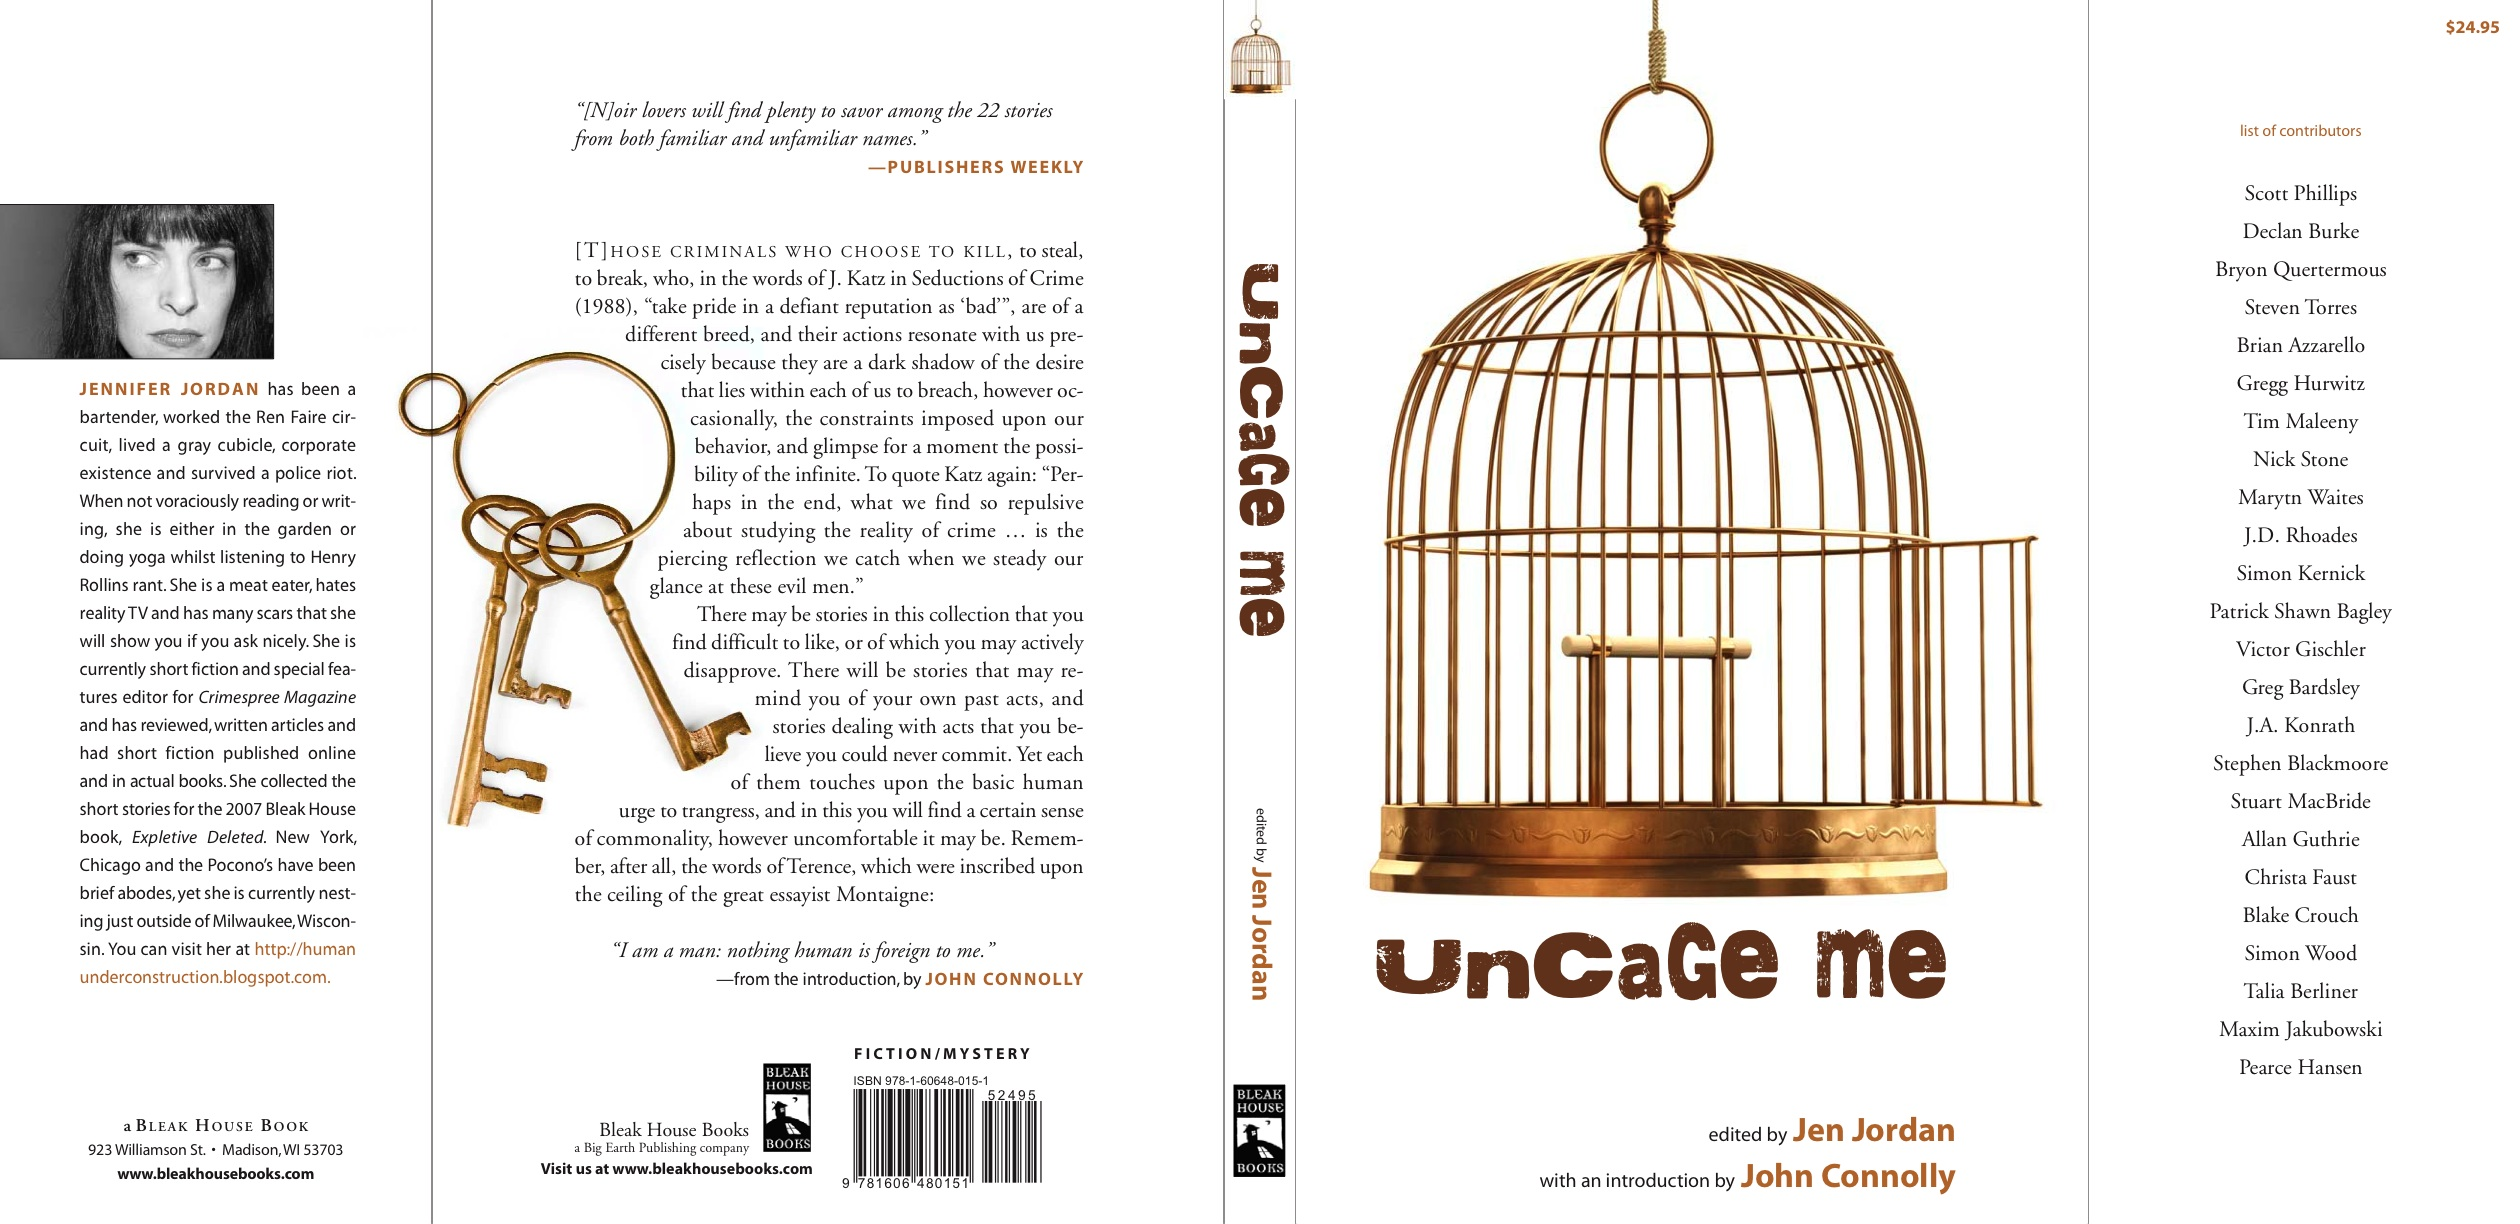 UncageMe hardcover_BleakHouse